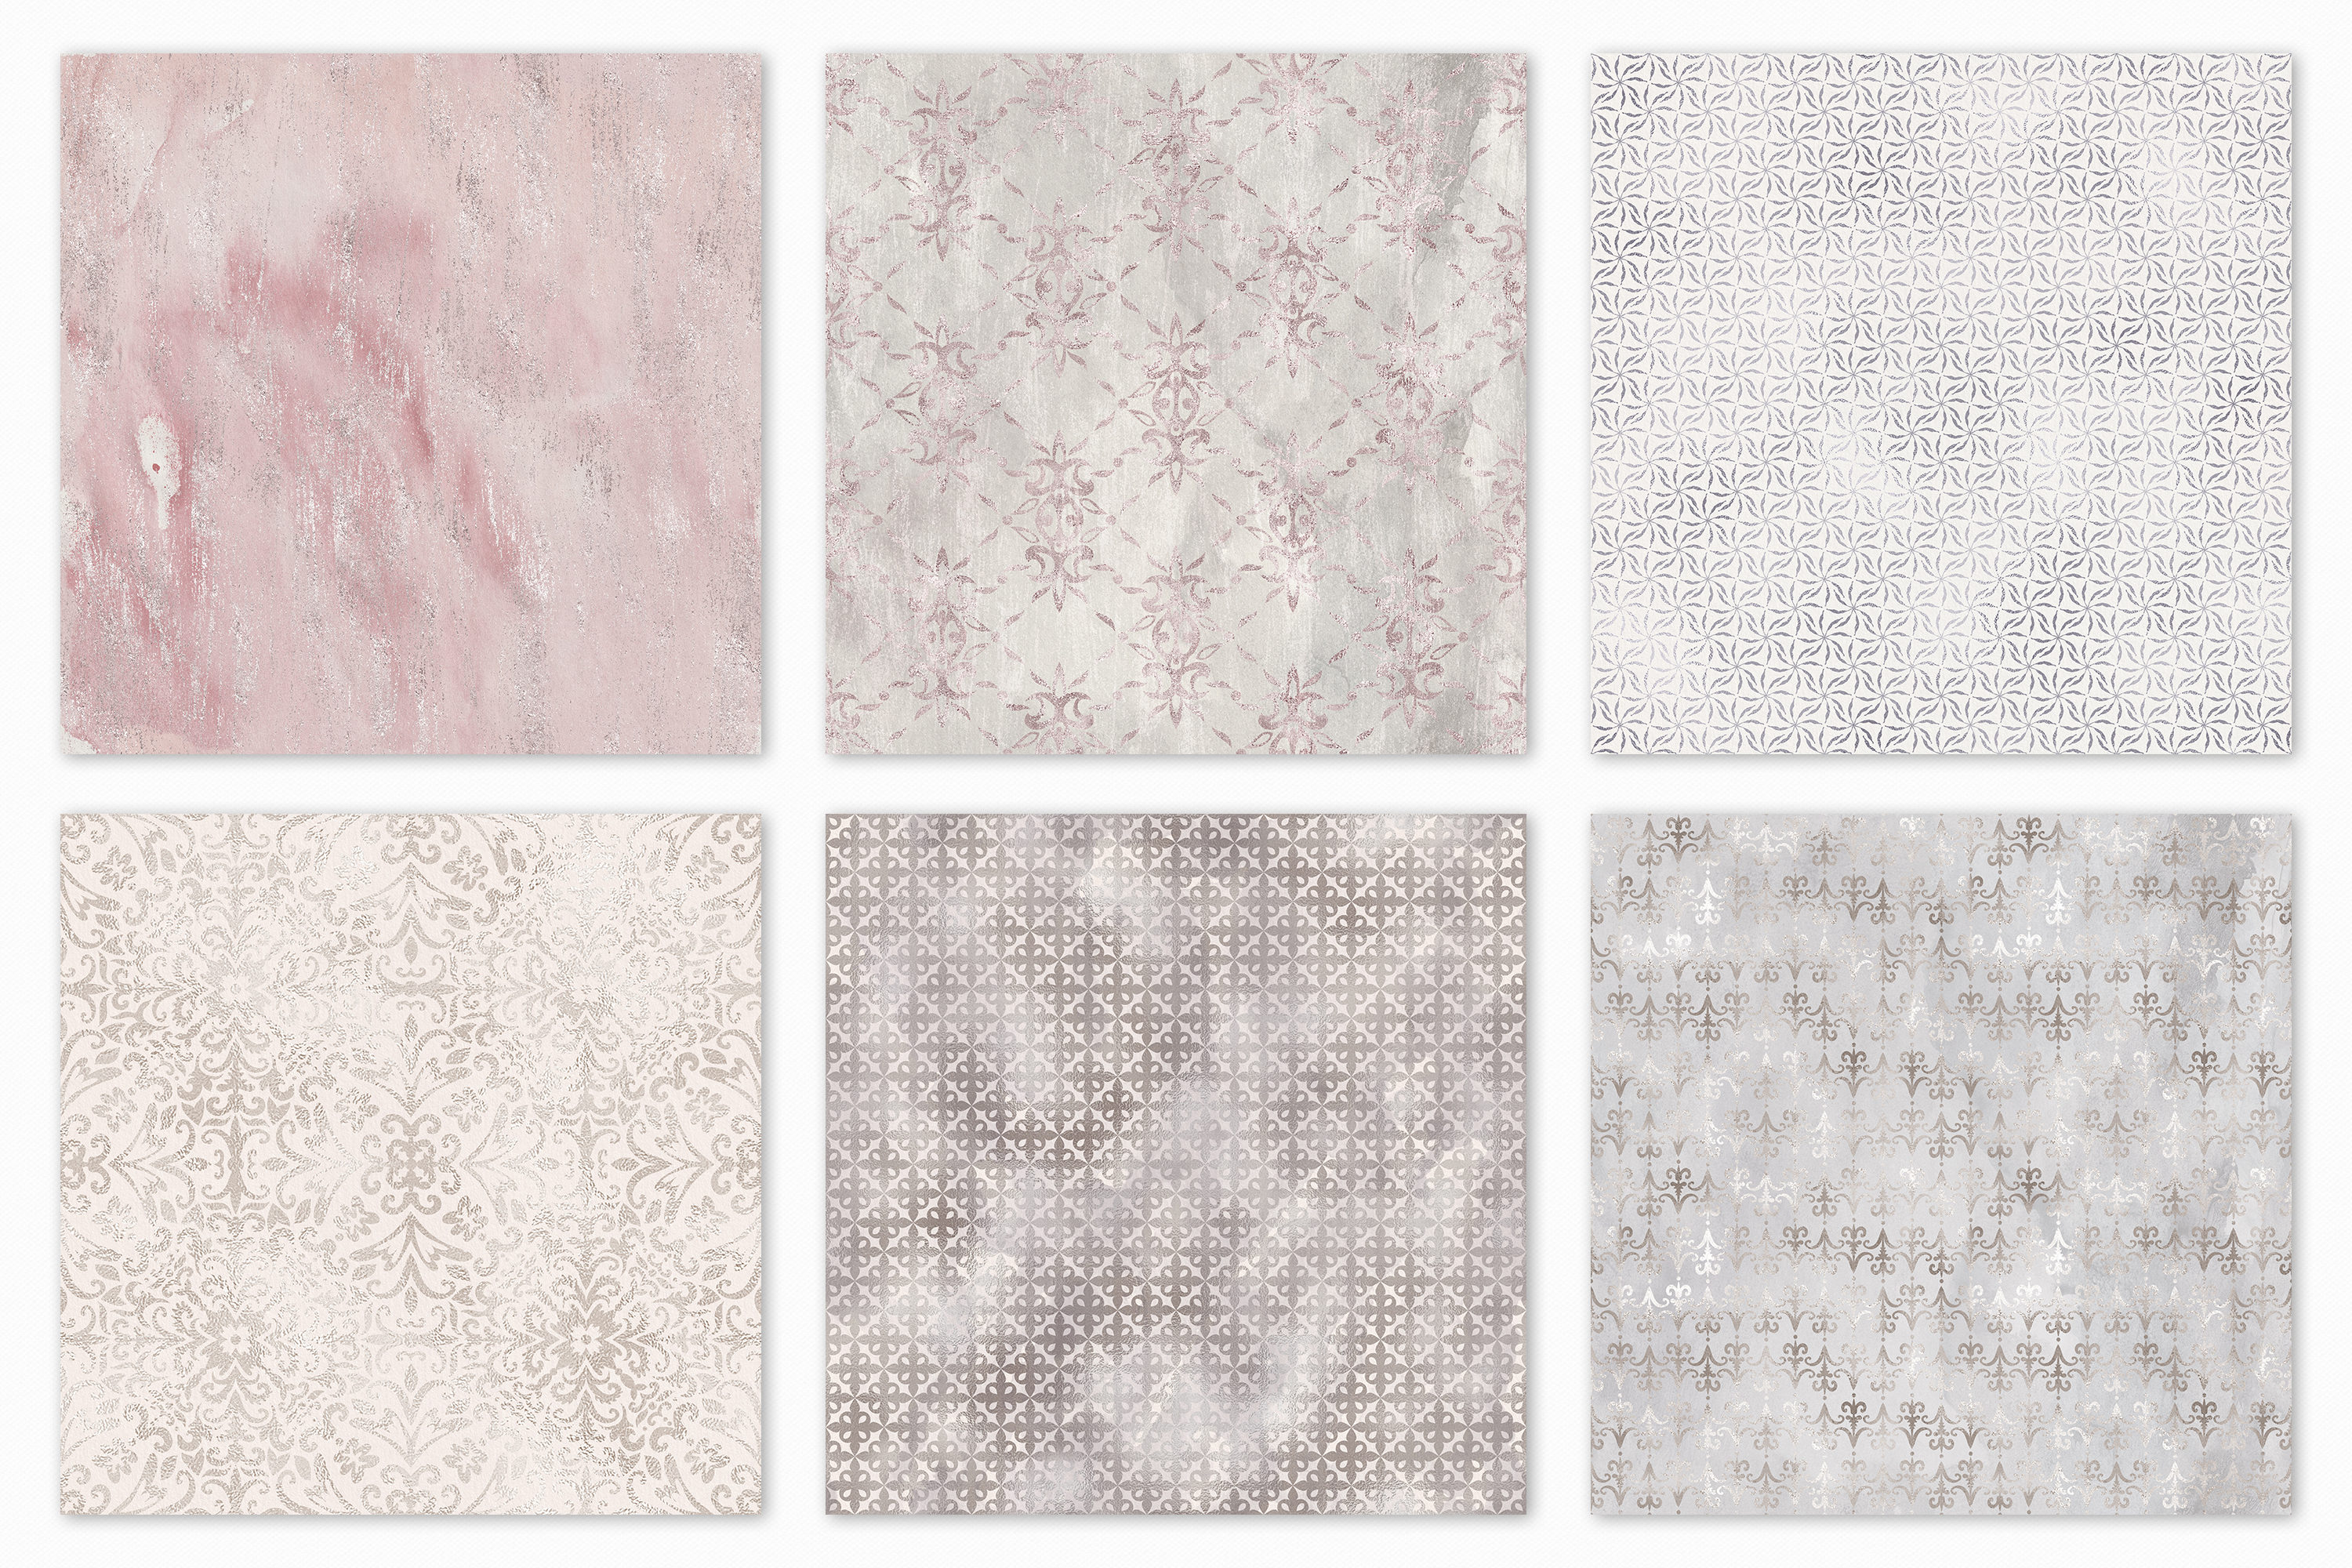 20 Seamless Shabby Chic Digital Papers example image 12